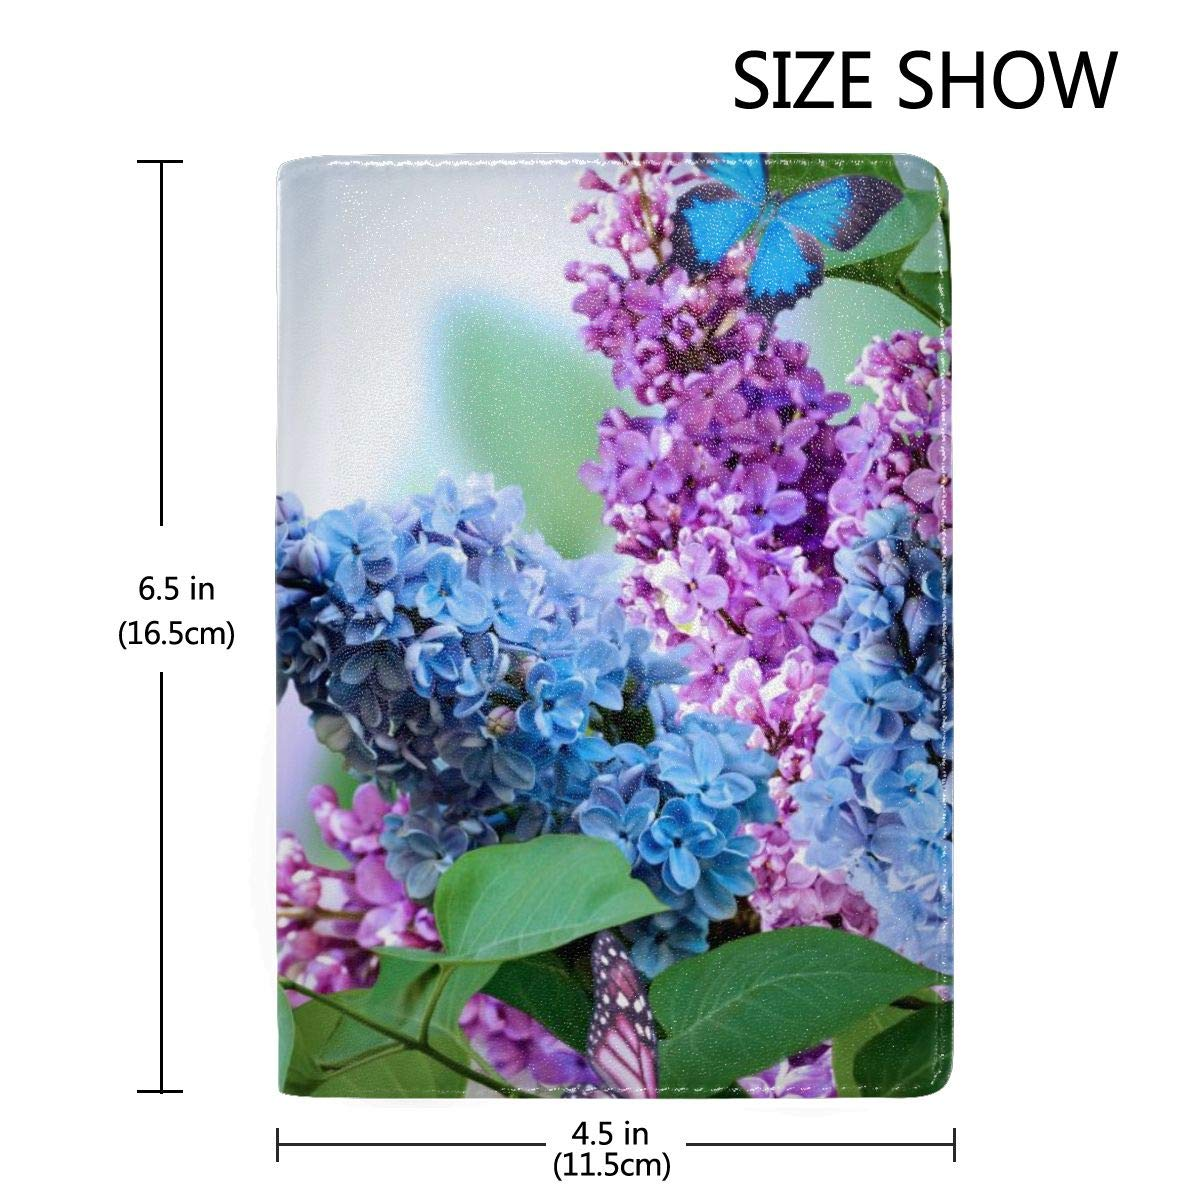 Lilac Flowers And Butterflies Fashion Leather Passport Holder Cover Case Travel Wallet 6.5 In